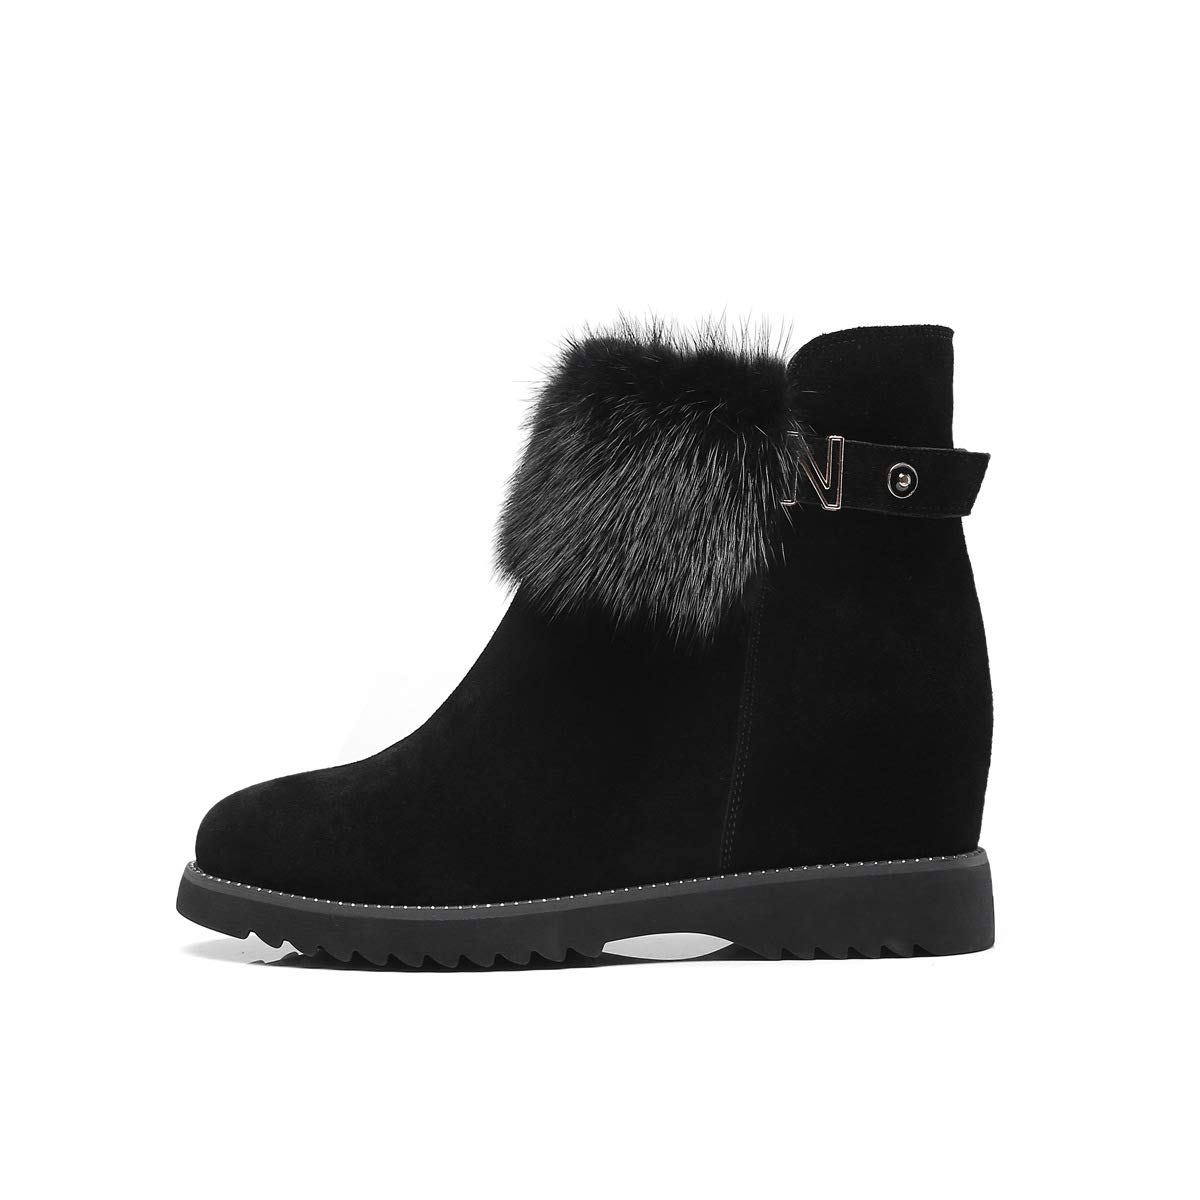 Black Women's Boots Autumn Winter Snow Boots Wedge Ankle Boots Round Head Invisible Heightening shoes Walking shoes (color   Black, Size   34)